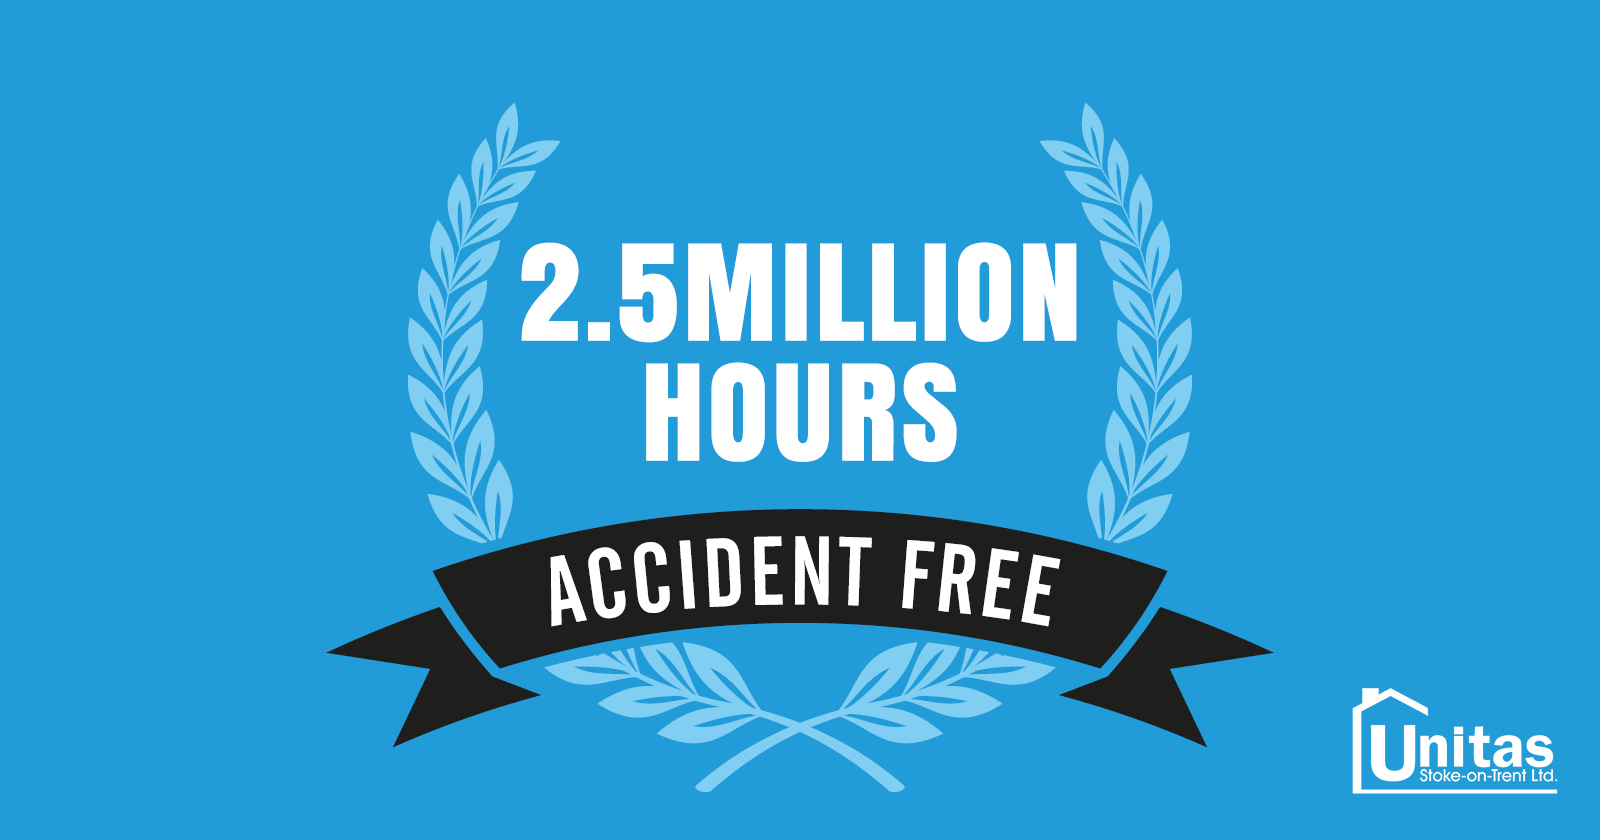 Unitas celebrates 2.5 million hours accident free